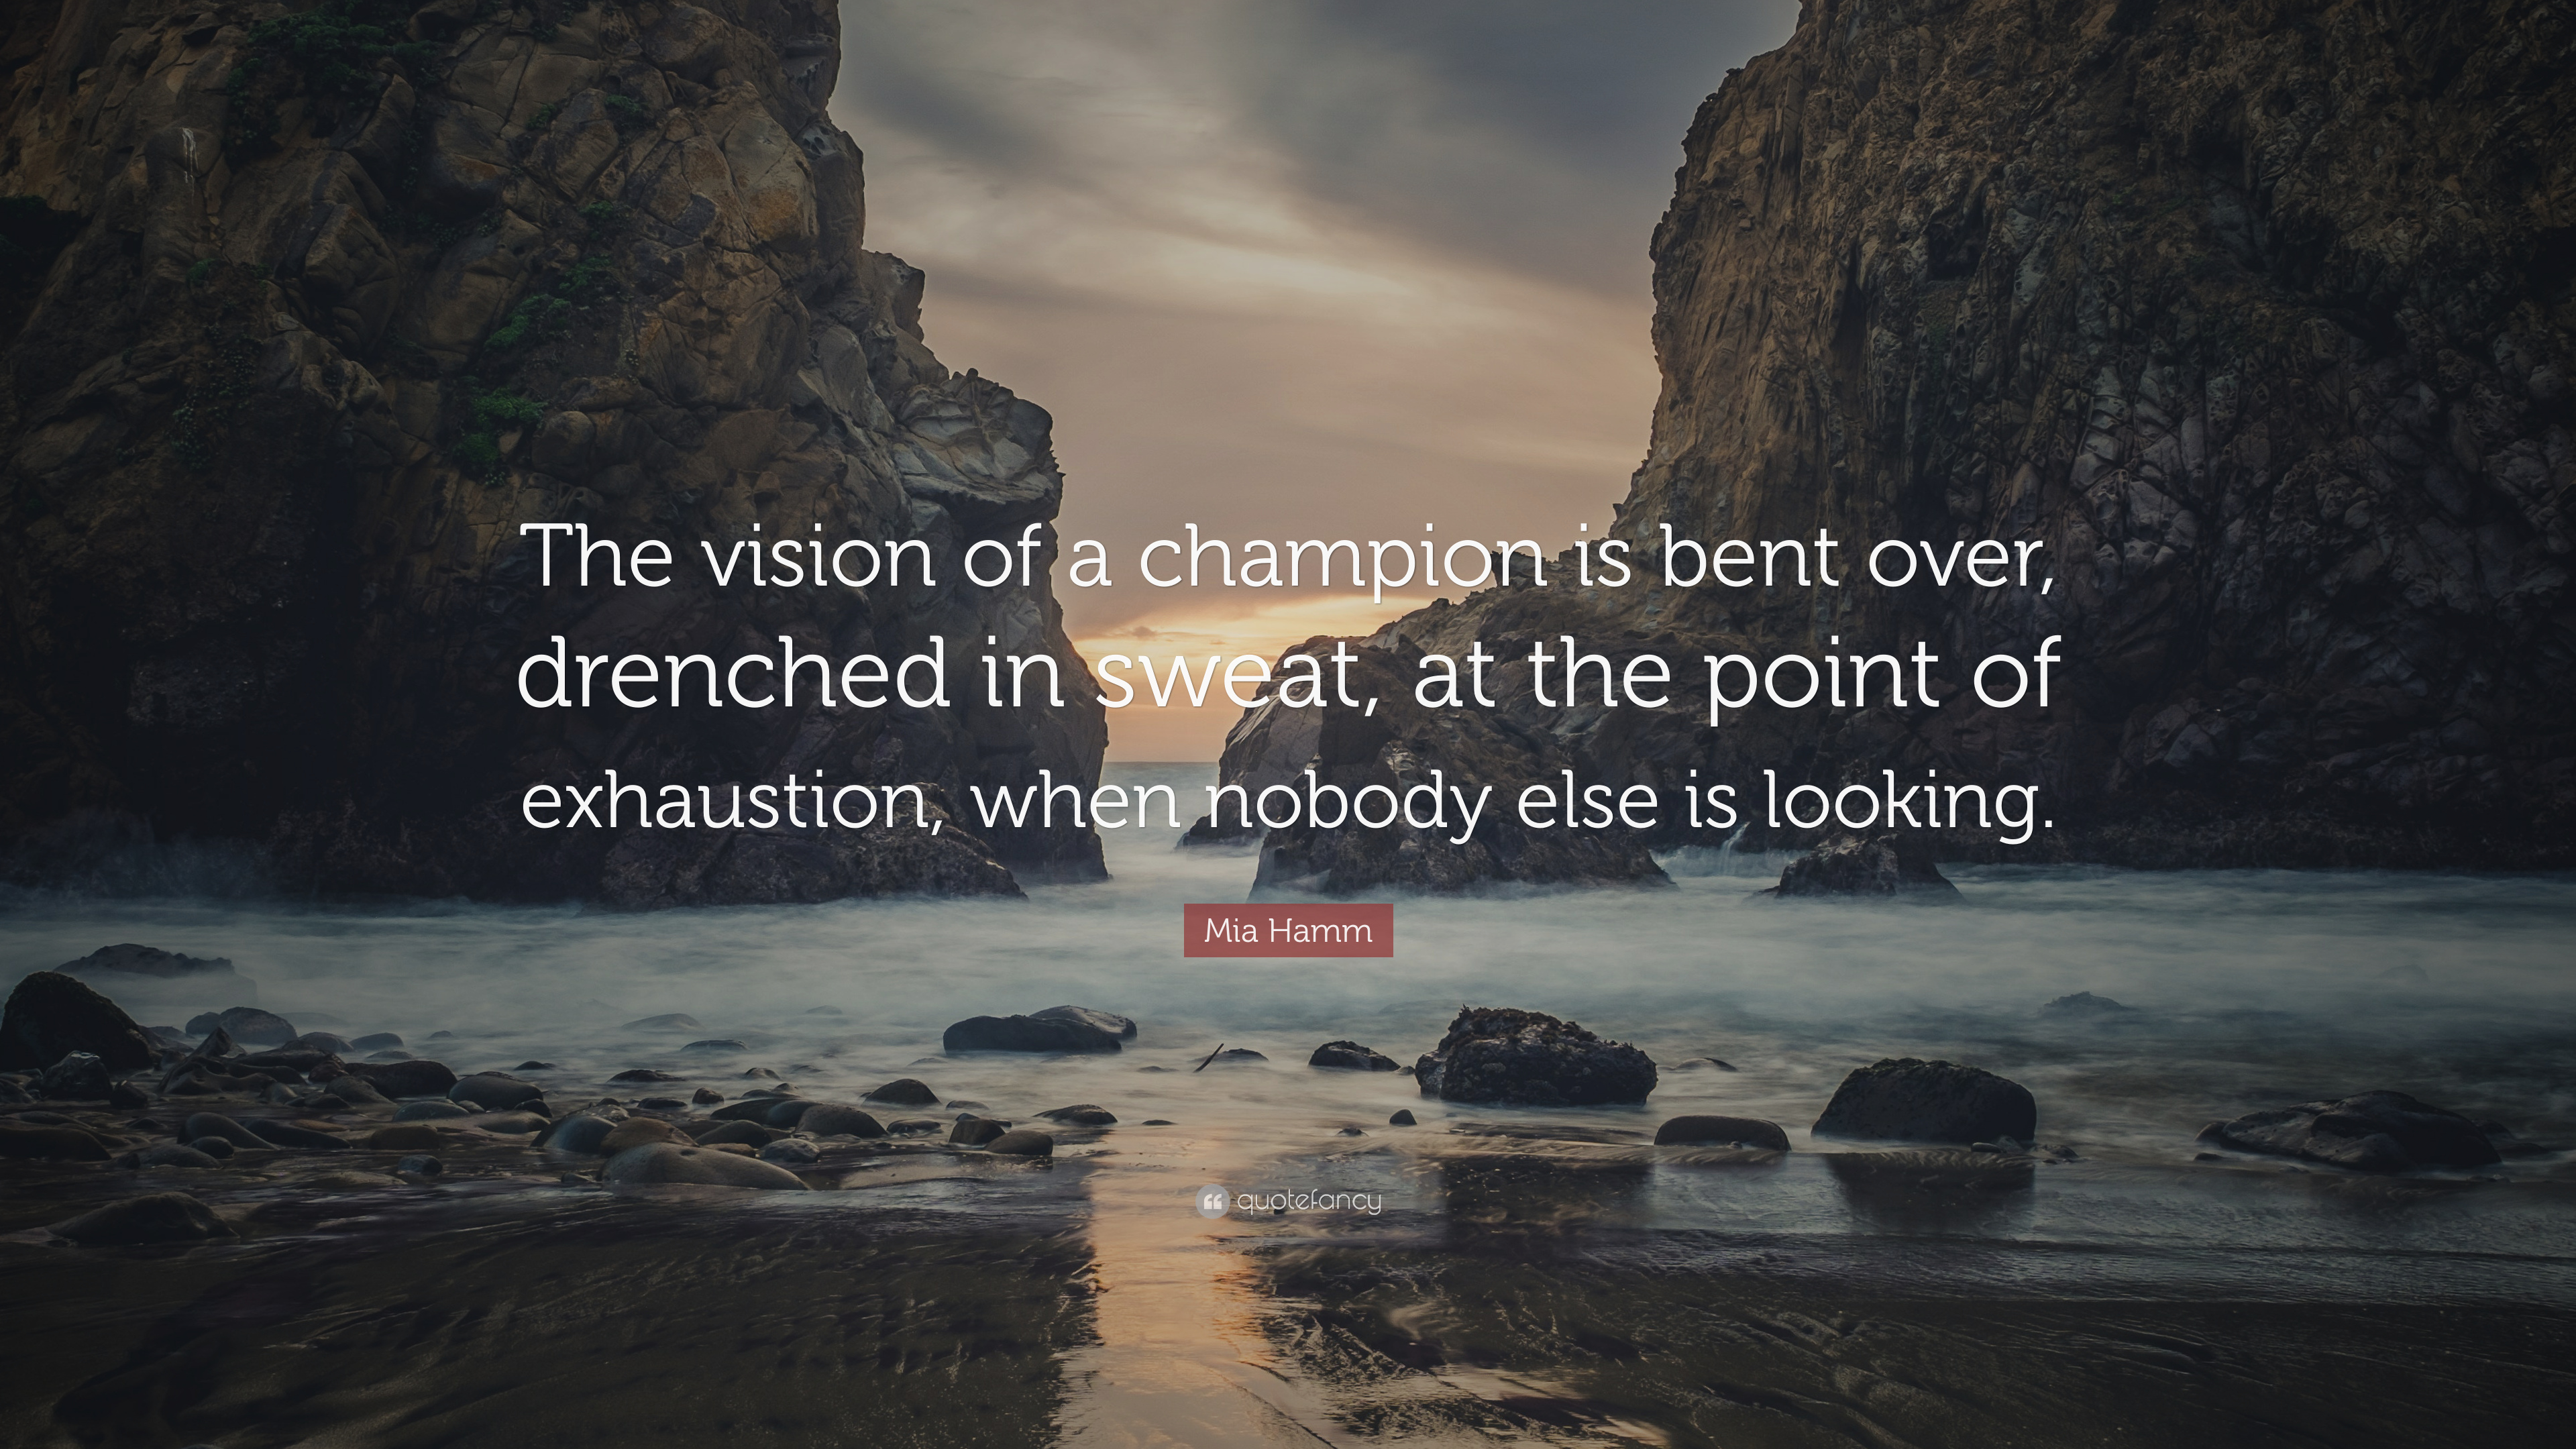 Mia Hamm Quote The Vision Of A Champion Is Bent Over Drenched In Sweat At The Point Of Exhaustion When Nobody Else Is Looking 7 Wallpapers Quotefancy